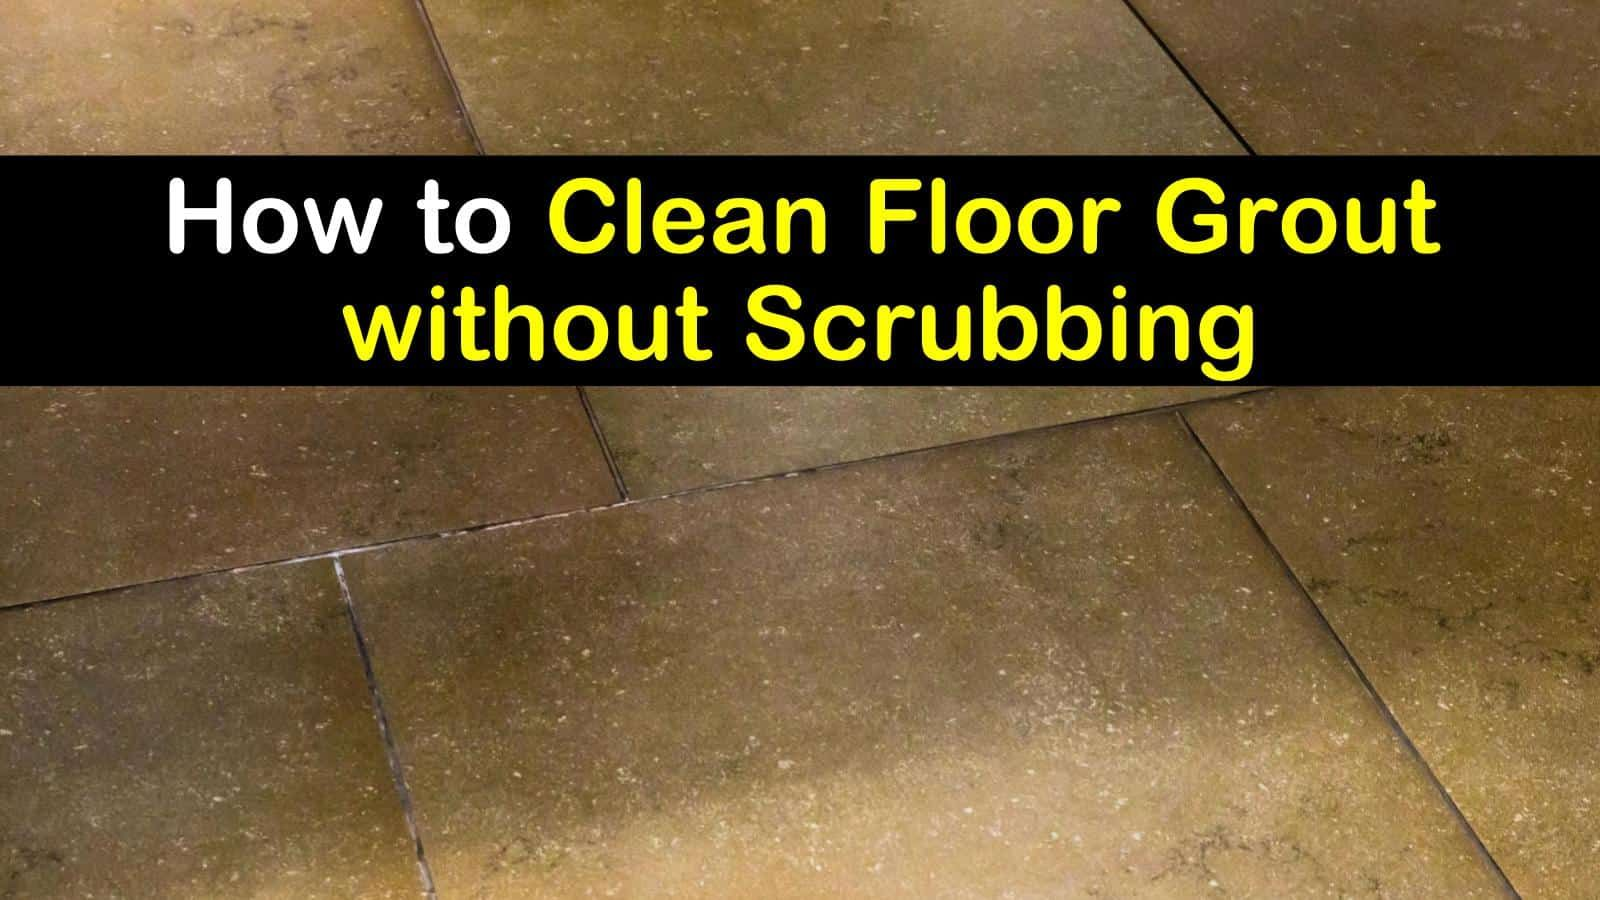 5 brilliant ways to clean floor grout without scrubbing